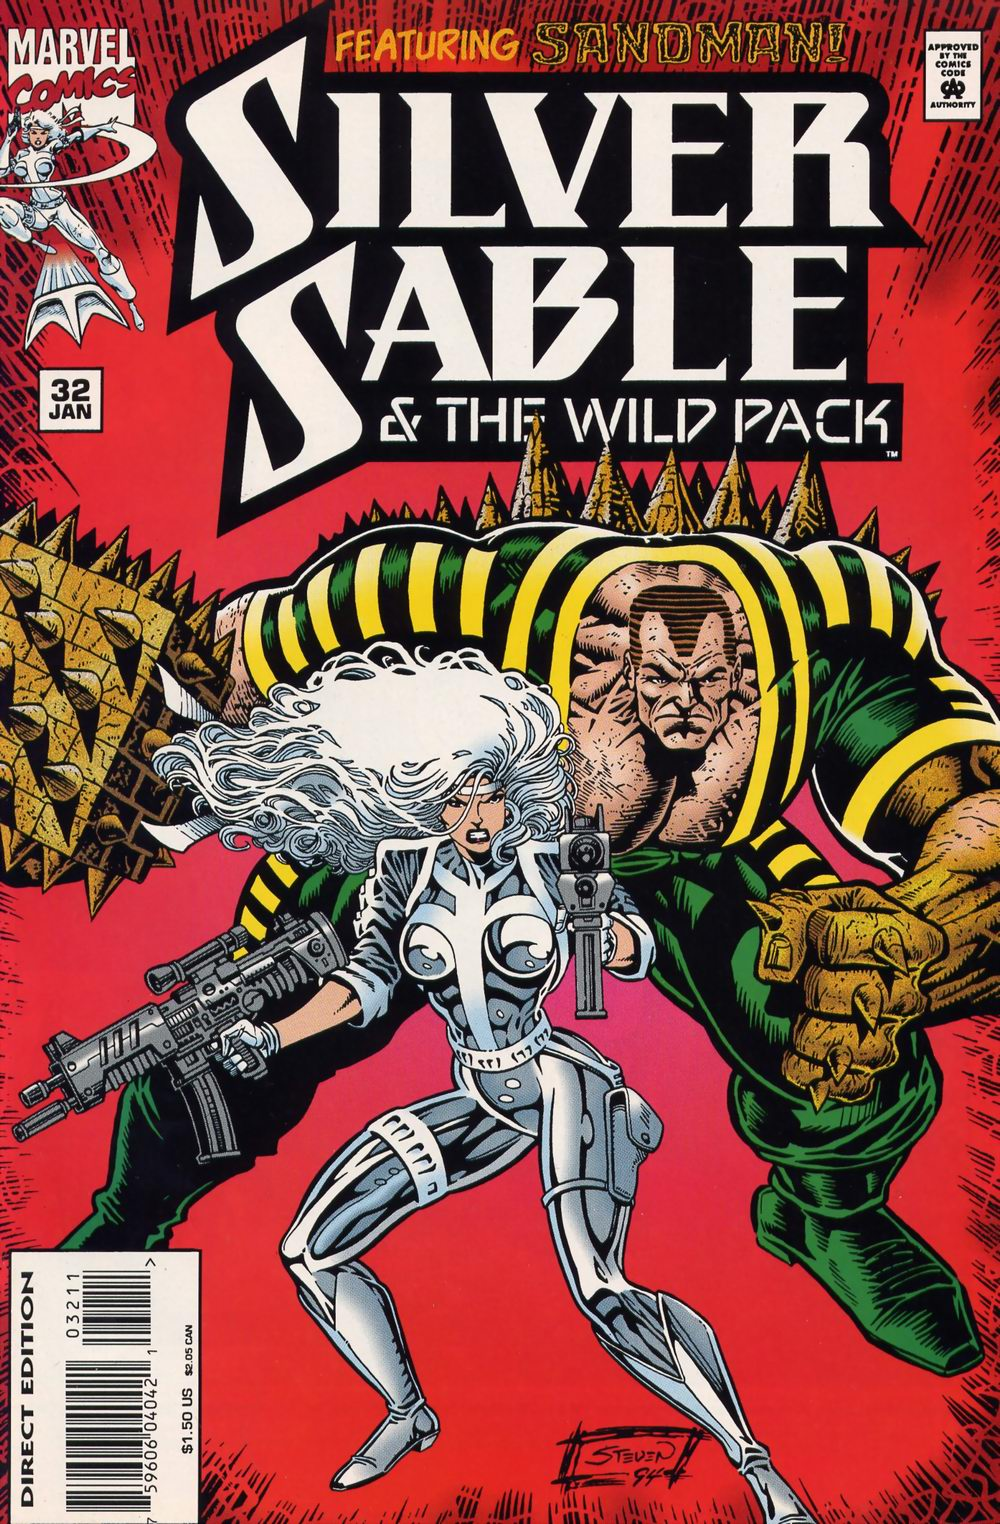 Read online Silver Sable and the Wild Pack comic -  Issue #32 - 1